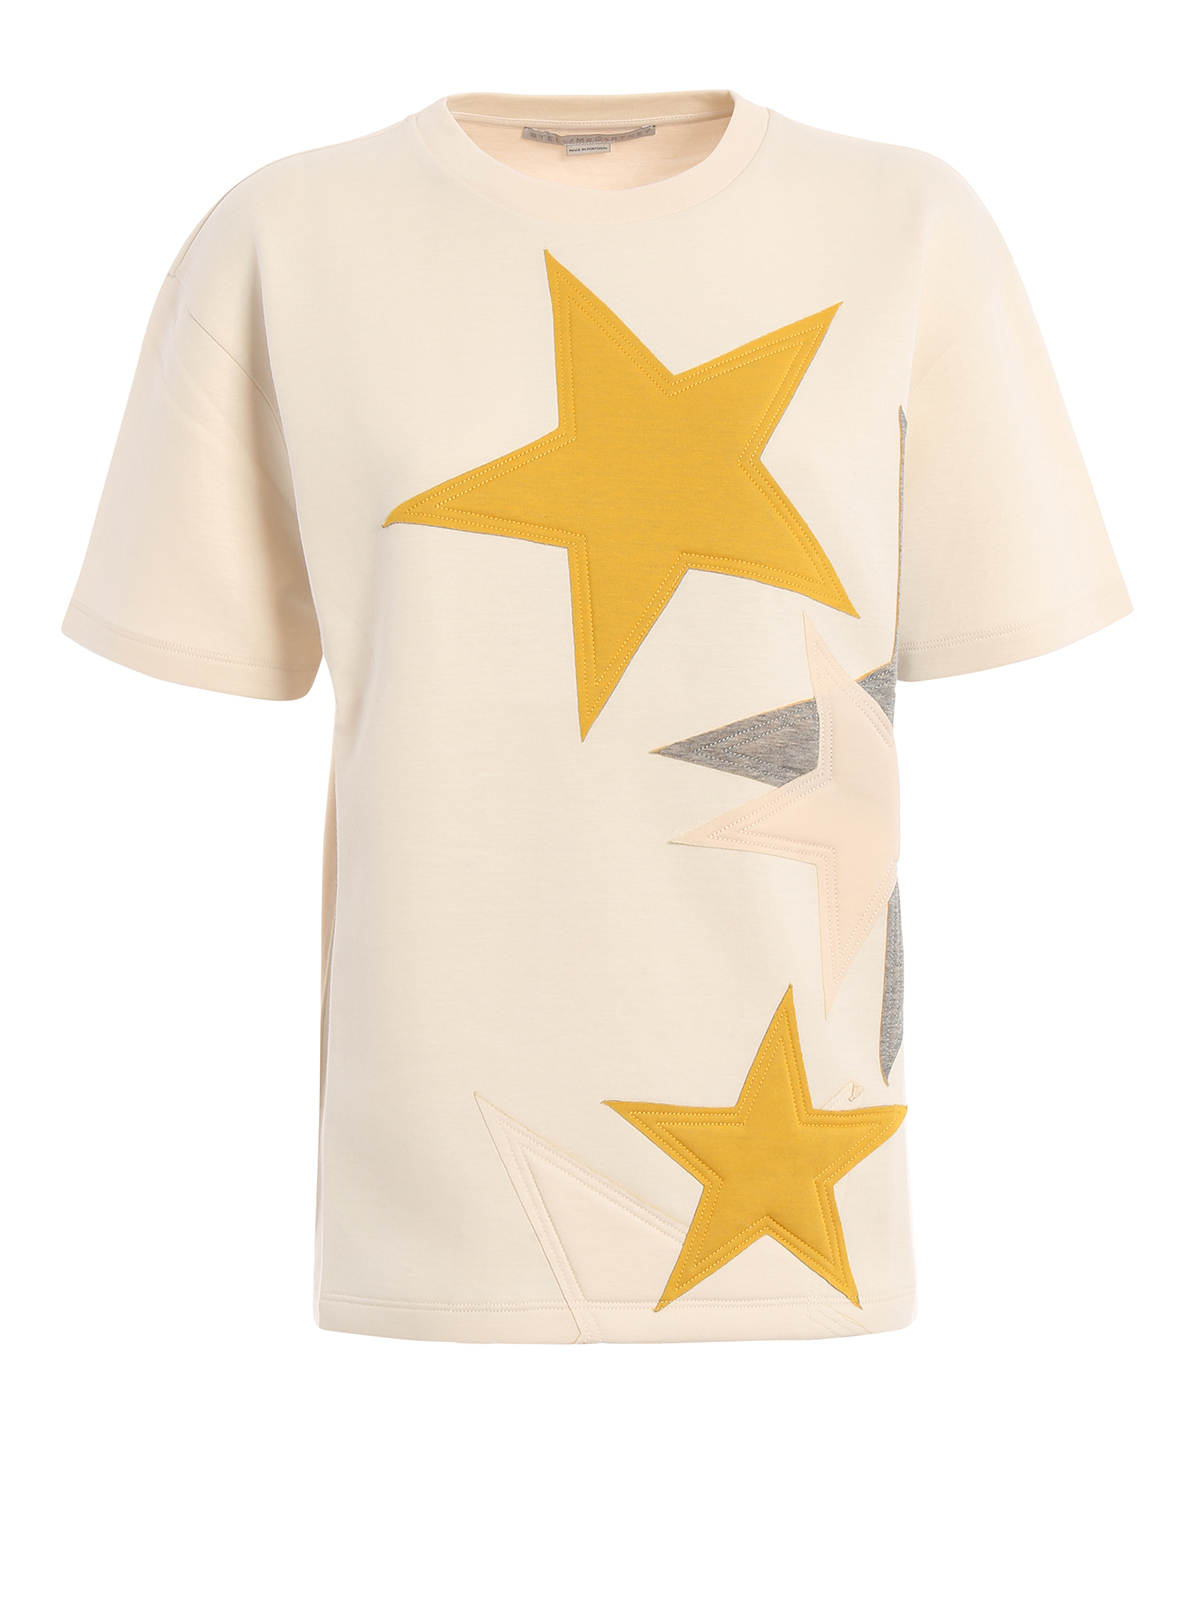 Star patches t shirt by stella mccartney t shirts ikrix for Stella mccartney t shirt